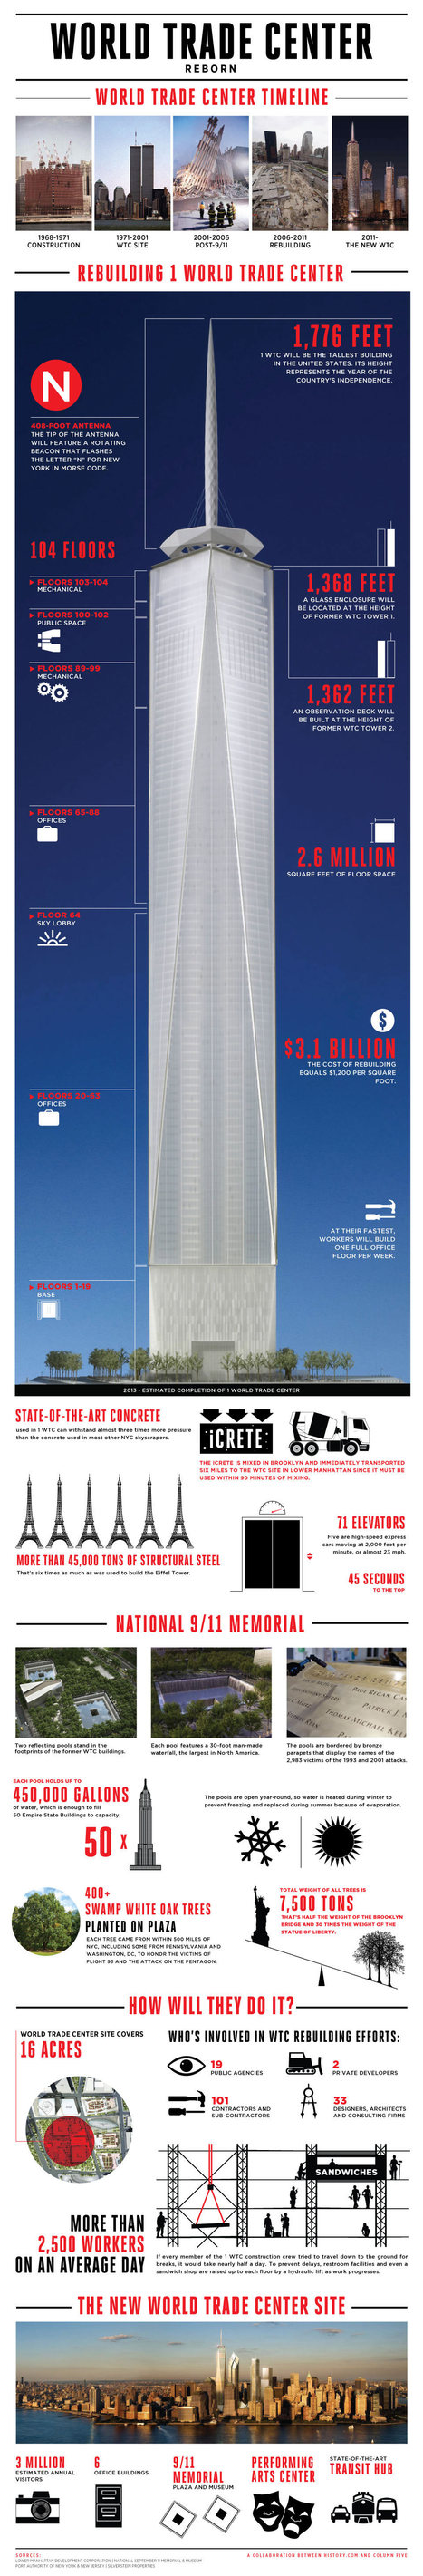 World Trade Center Reborn: Infographic | Infographics | Scoop.it